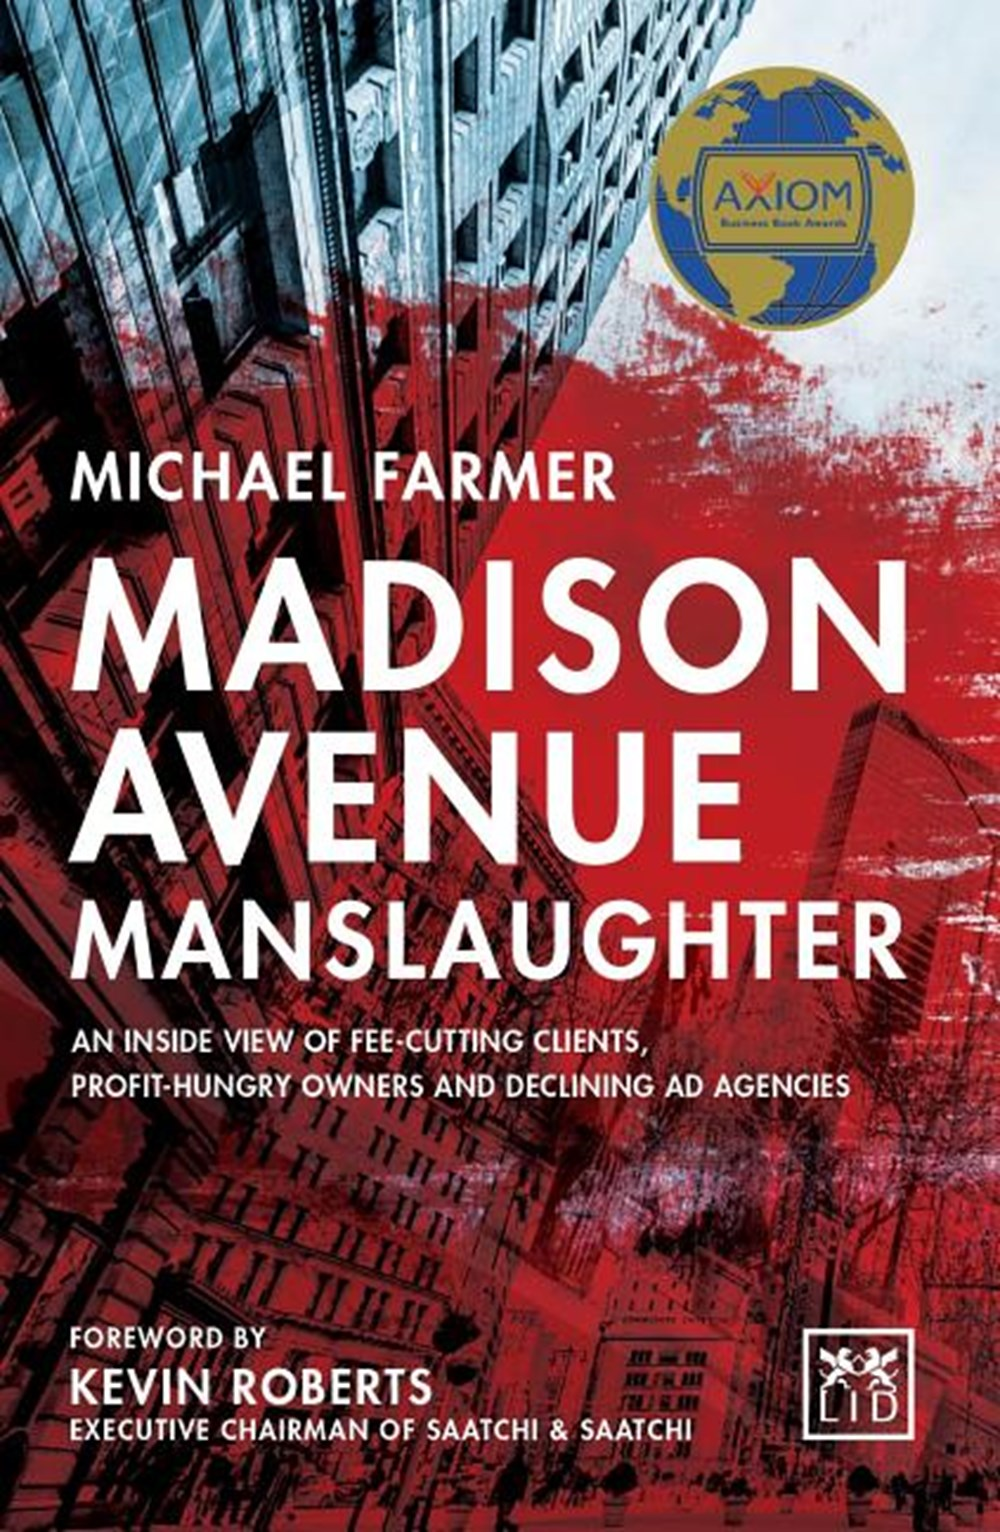 Madison Avenue Manslaughter An Inside View of Fee-Cutting Clients, Profit-Hungry Owners and Declinin